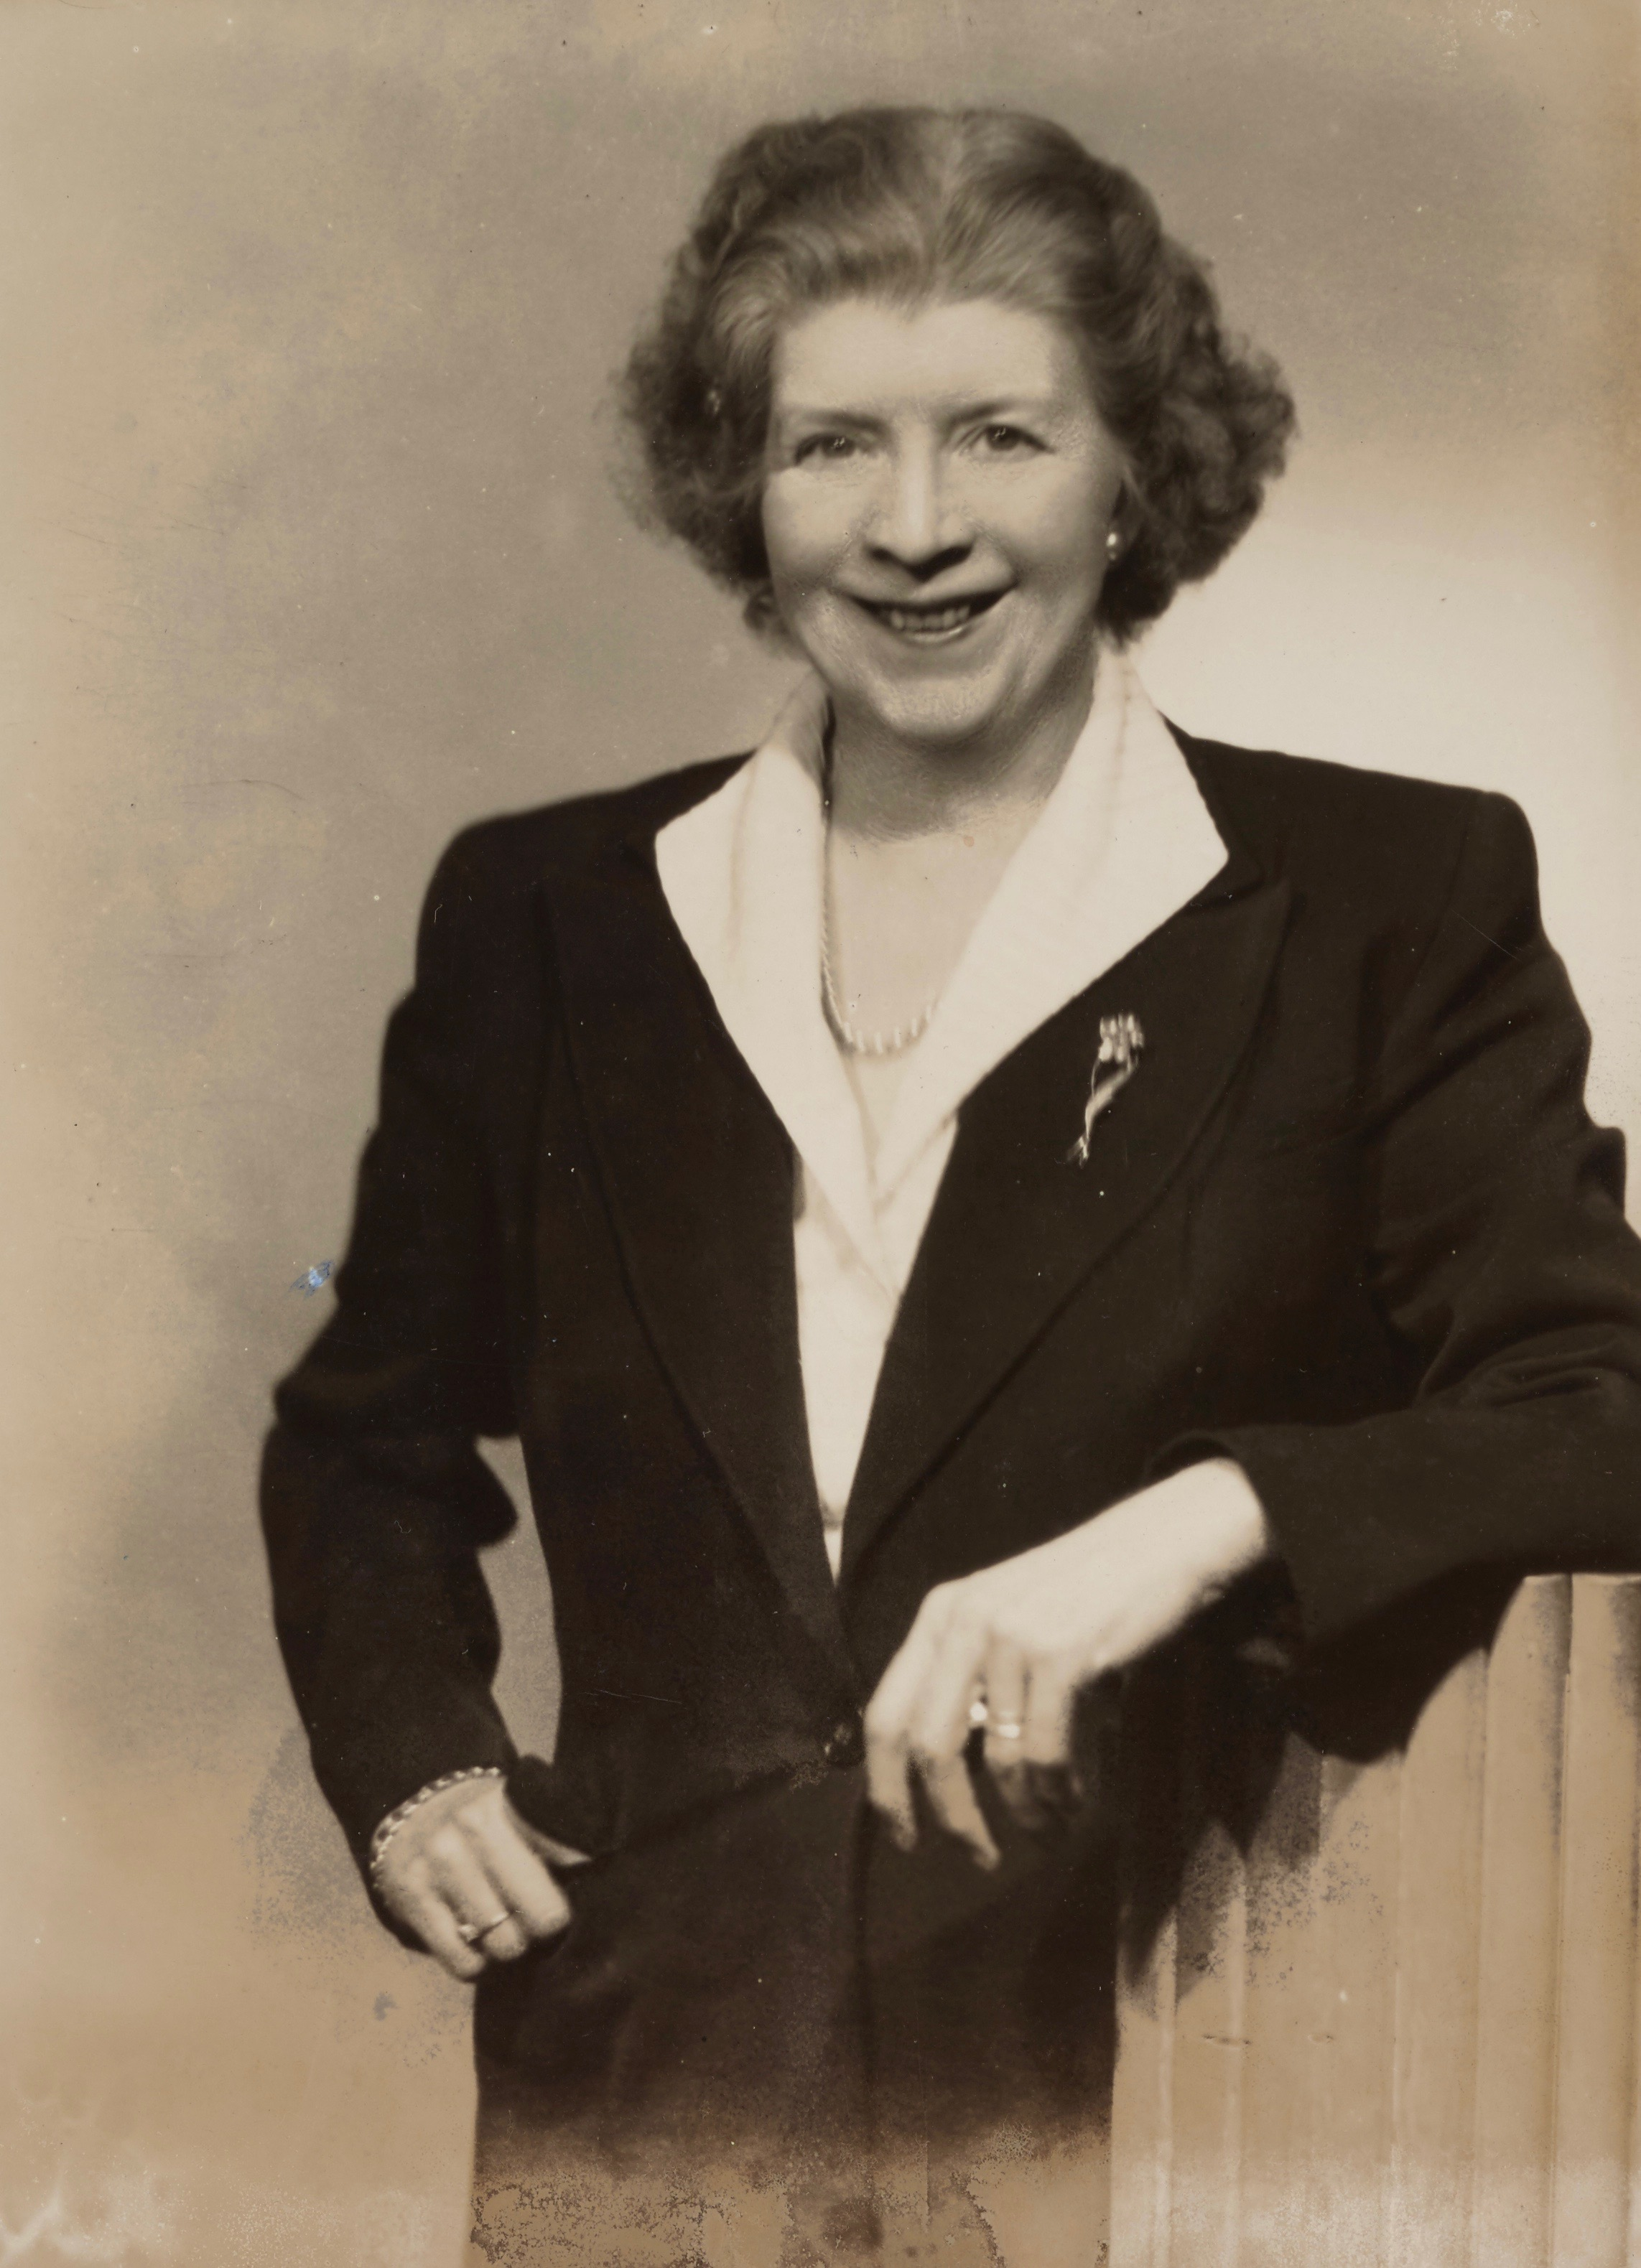 Black and white photograph portrait of Margaret Fishback